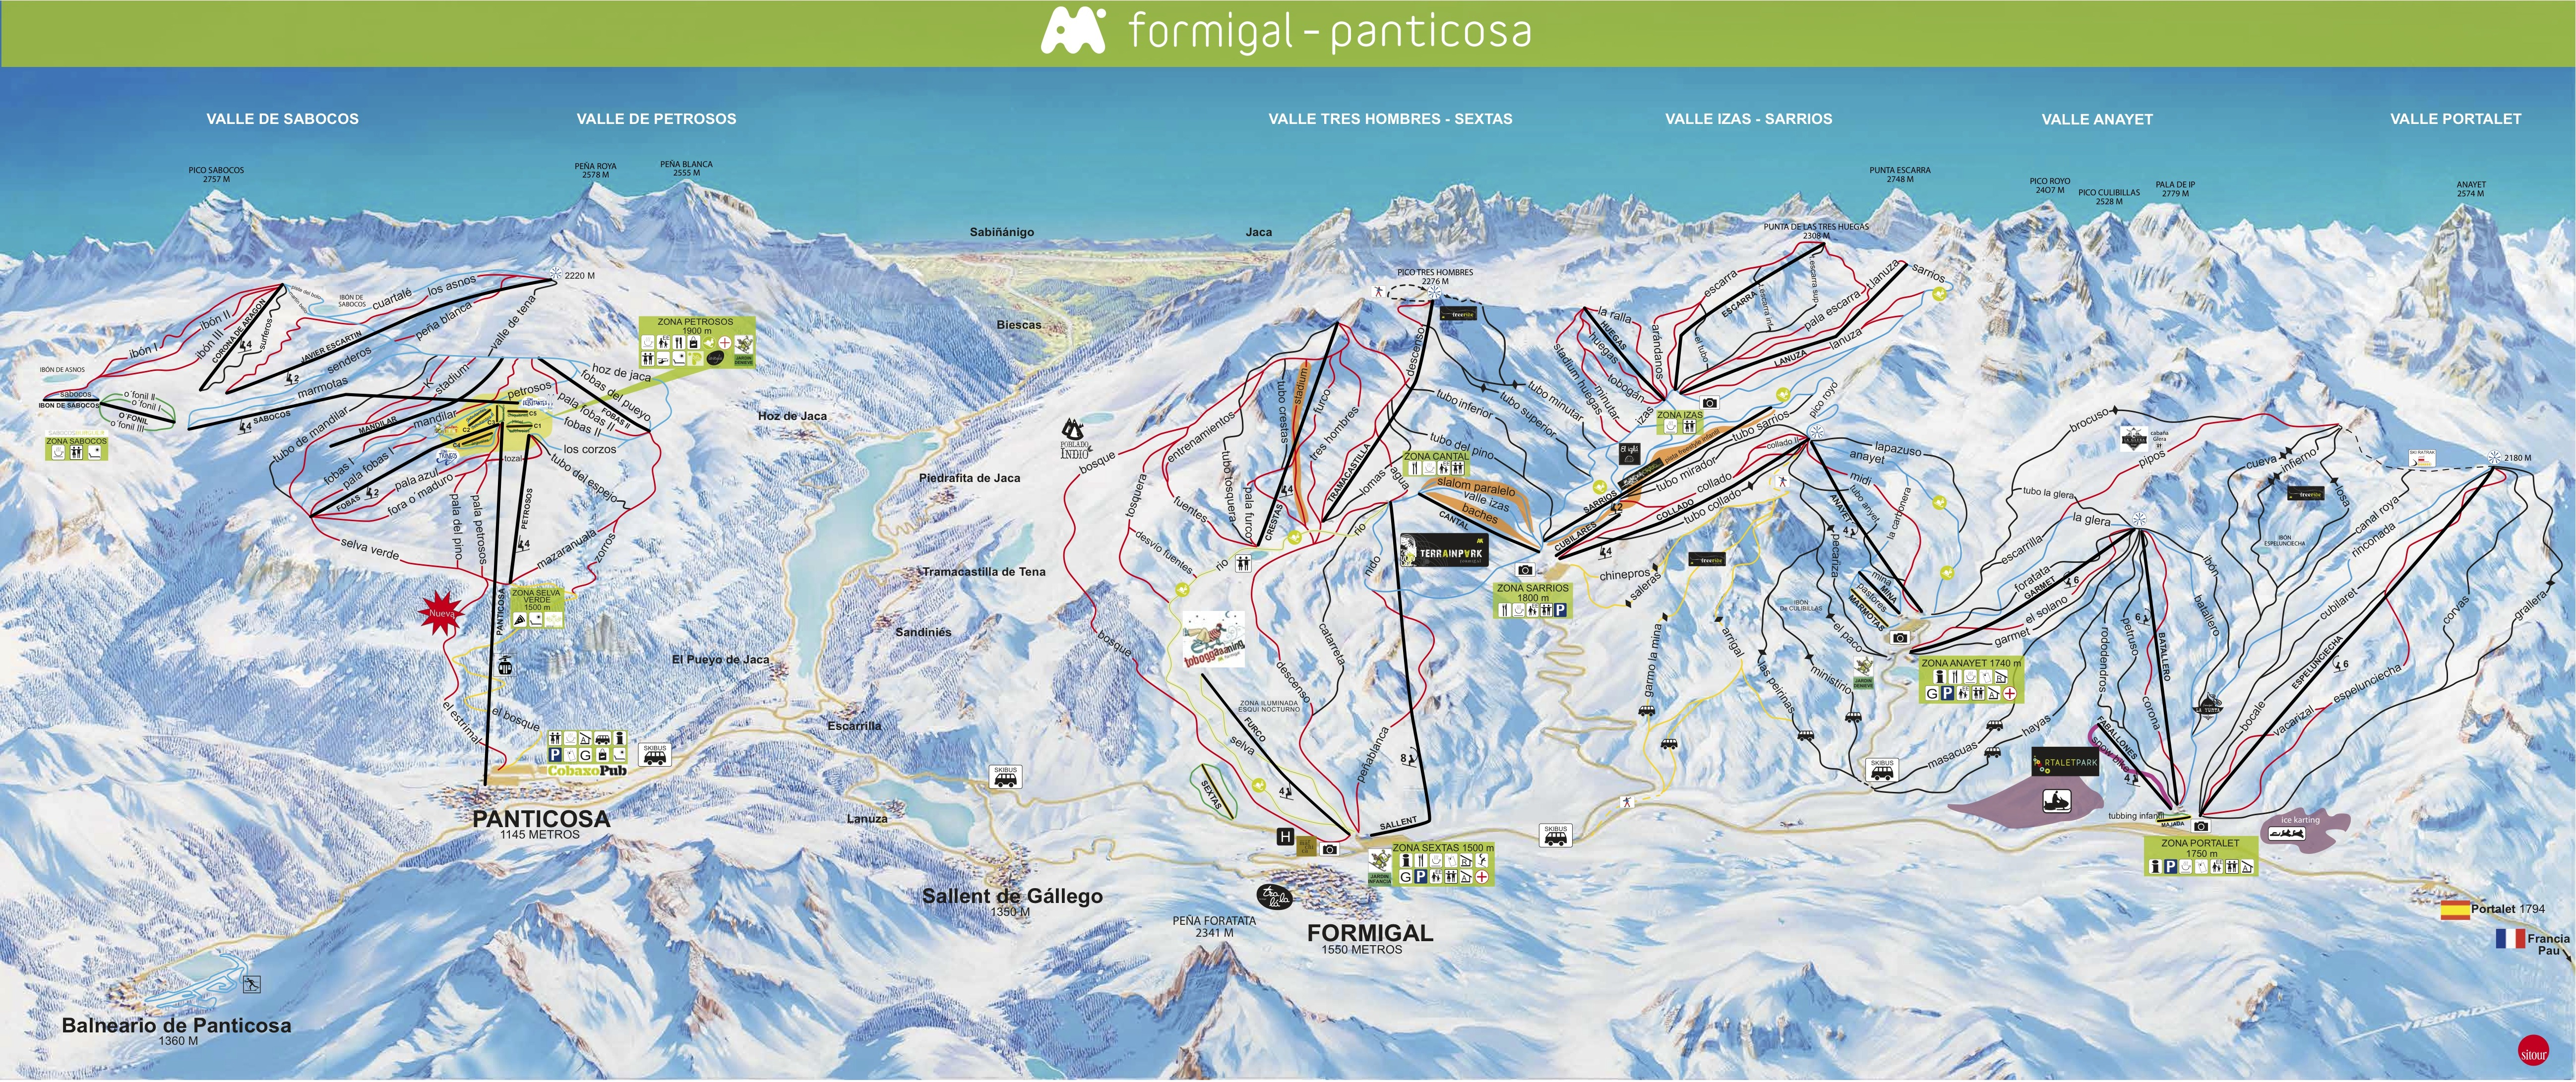 f rmigal plan des pistes de ski f rmigal. Black Bedroom Furniture Sets. Home Design Ideas